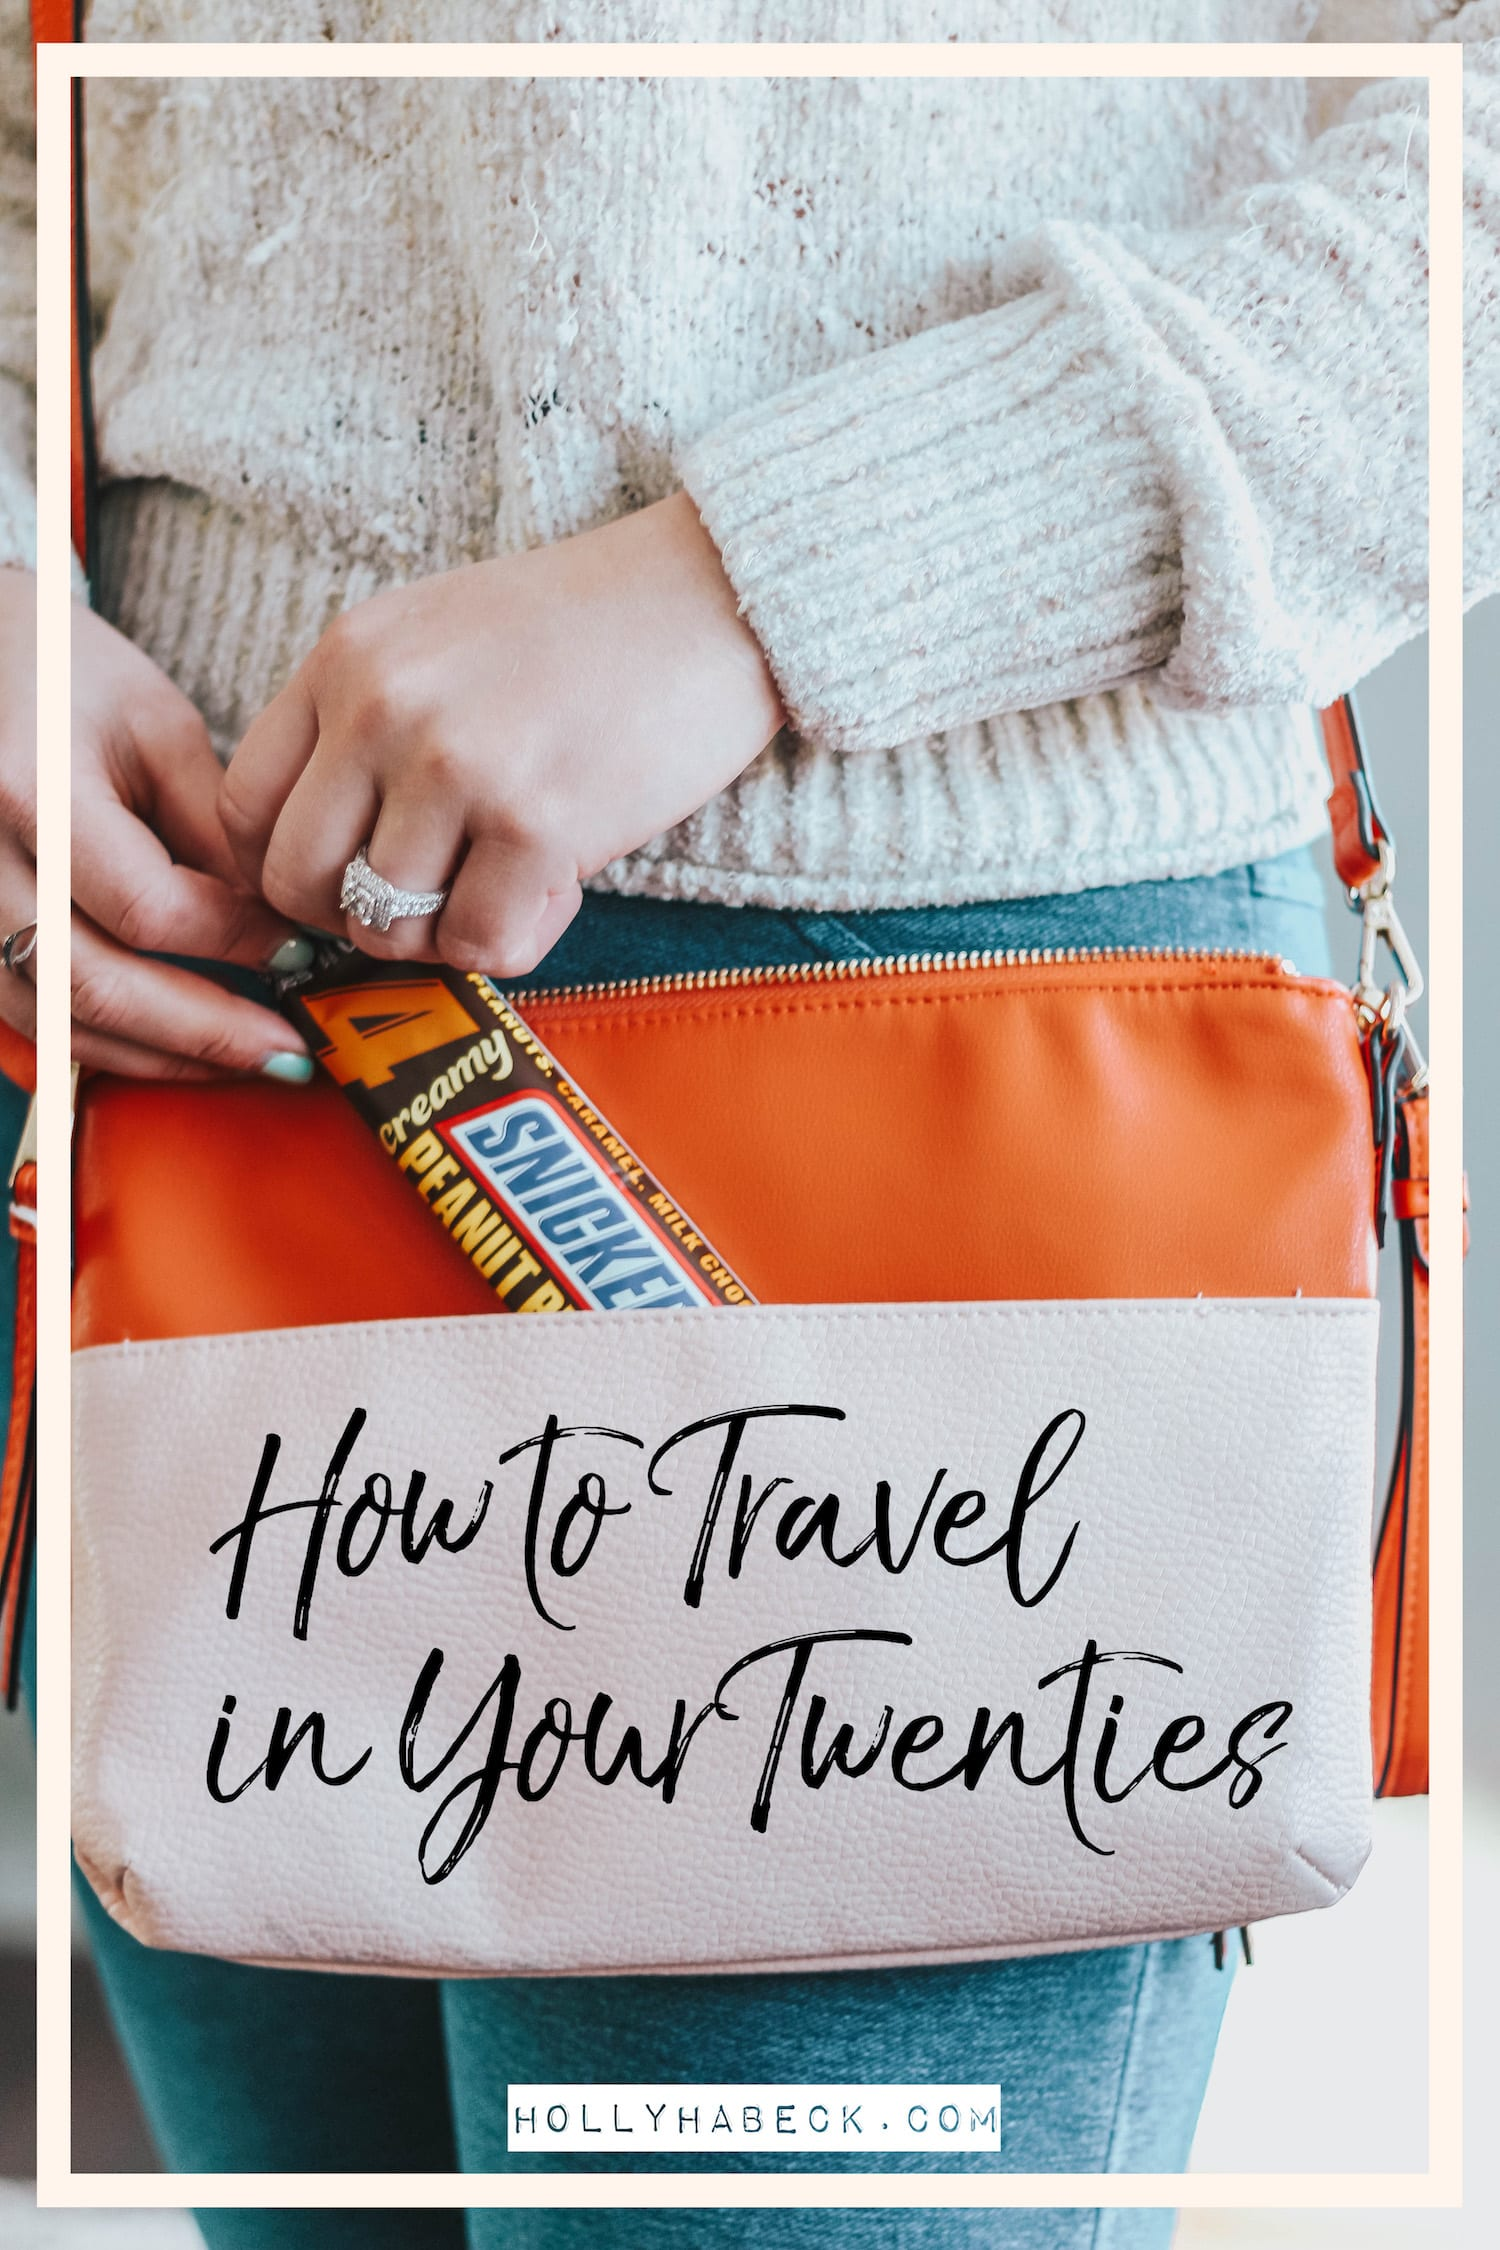 How to Travel in Your Twenties (5 Cheap Ways to Travel) - Holly Habeck